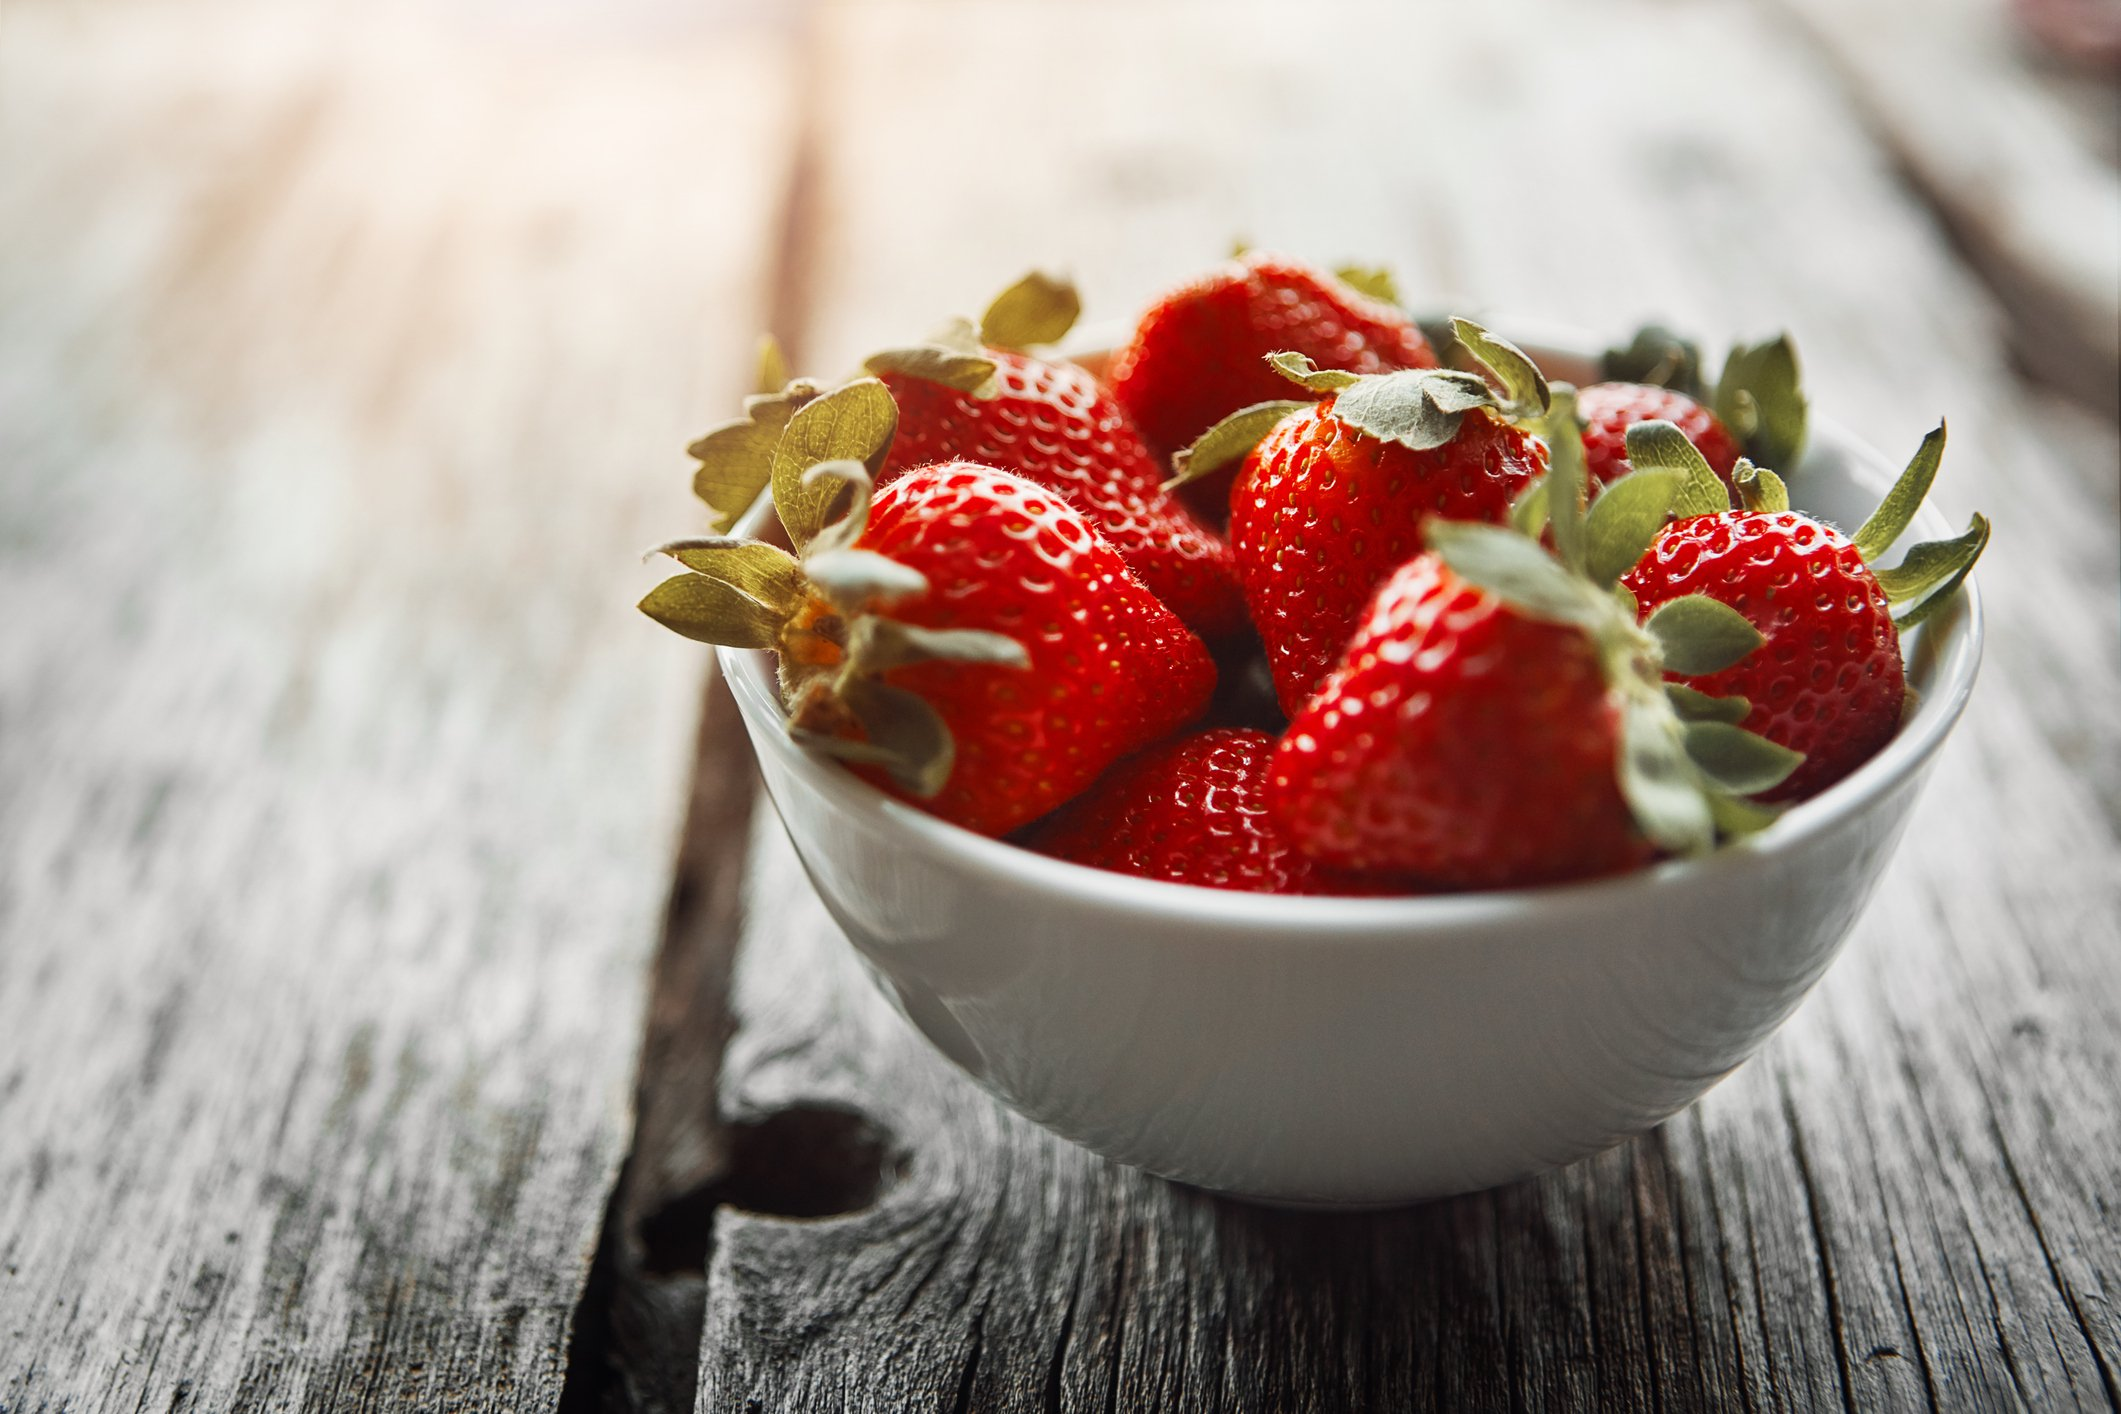 Shot of a bowl of fresh strawberries on a table